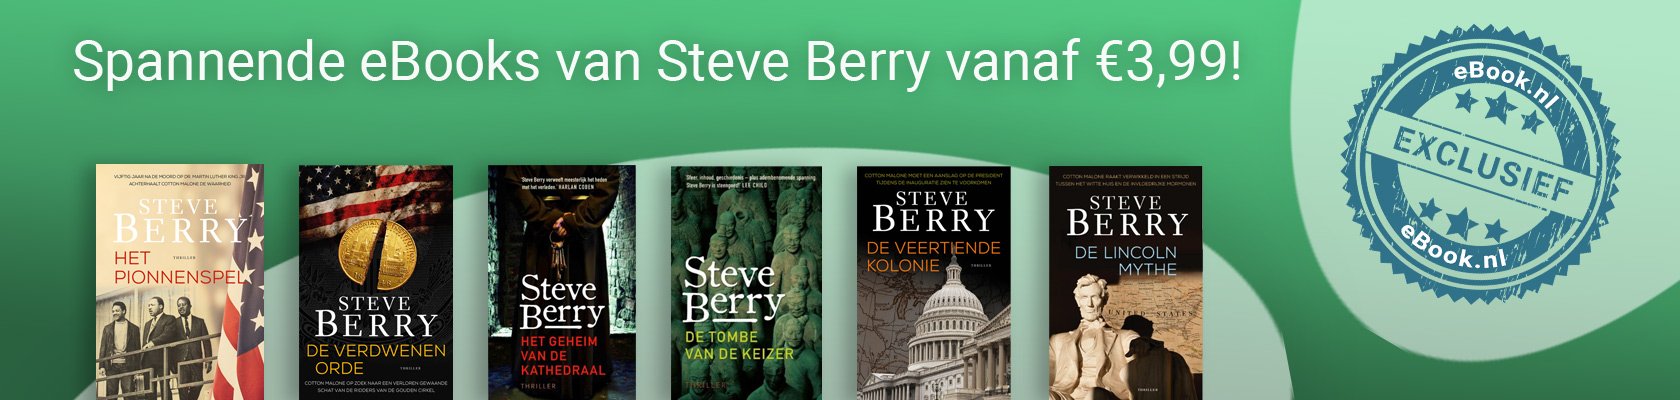 Spannende eBooks van Steve Berry